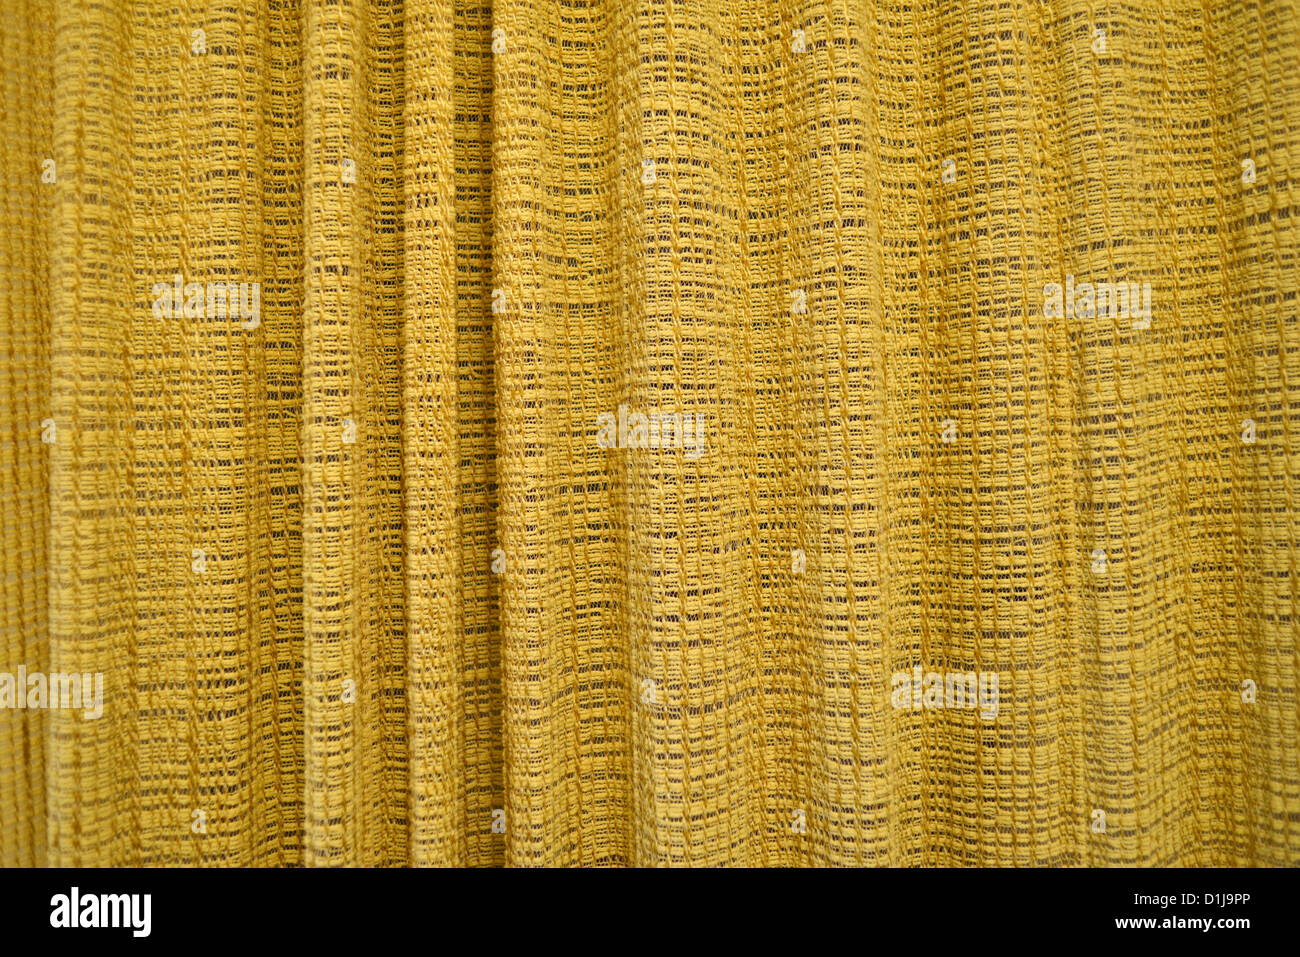 Yellow curtain or drape texture, high resolution and very detailed. Stock Photo